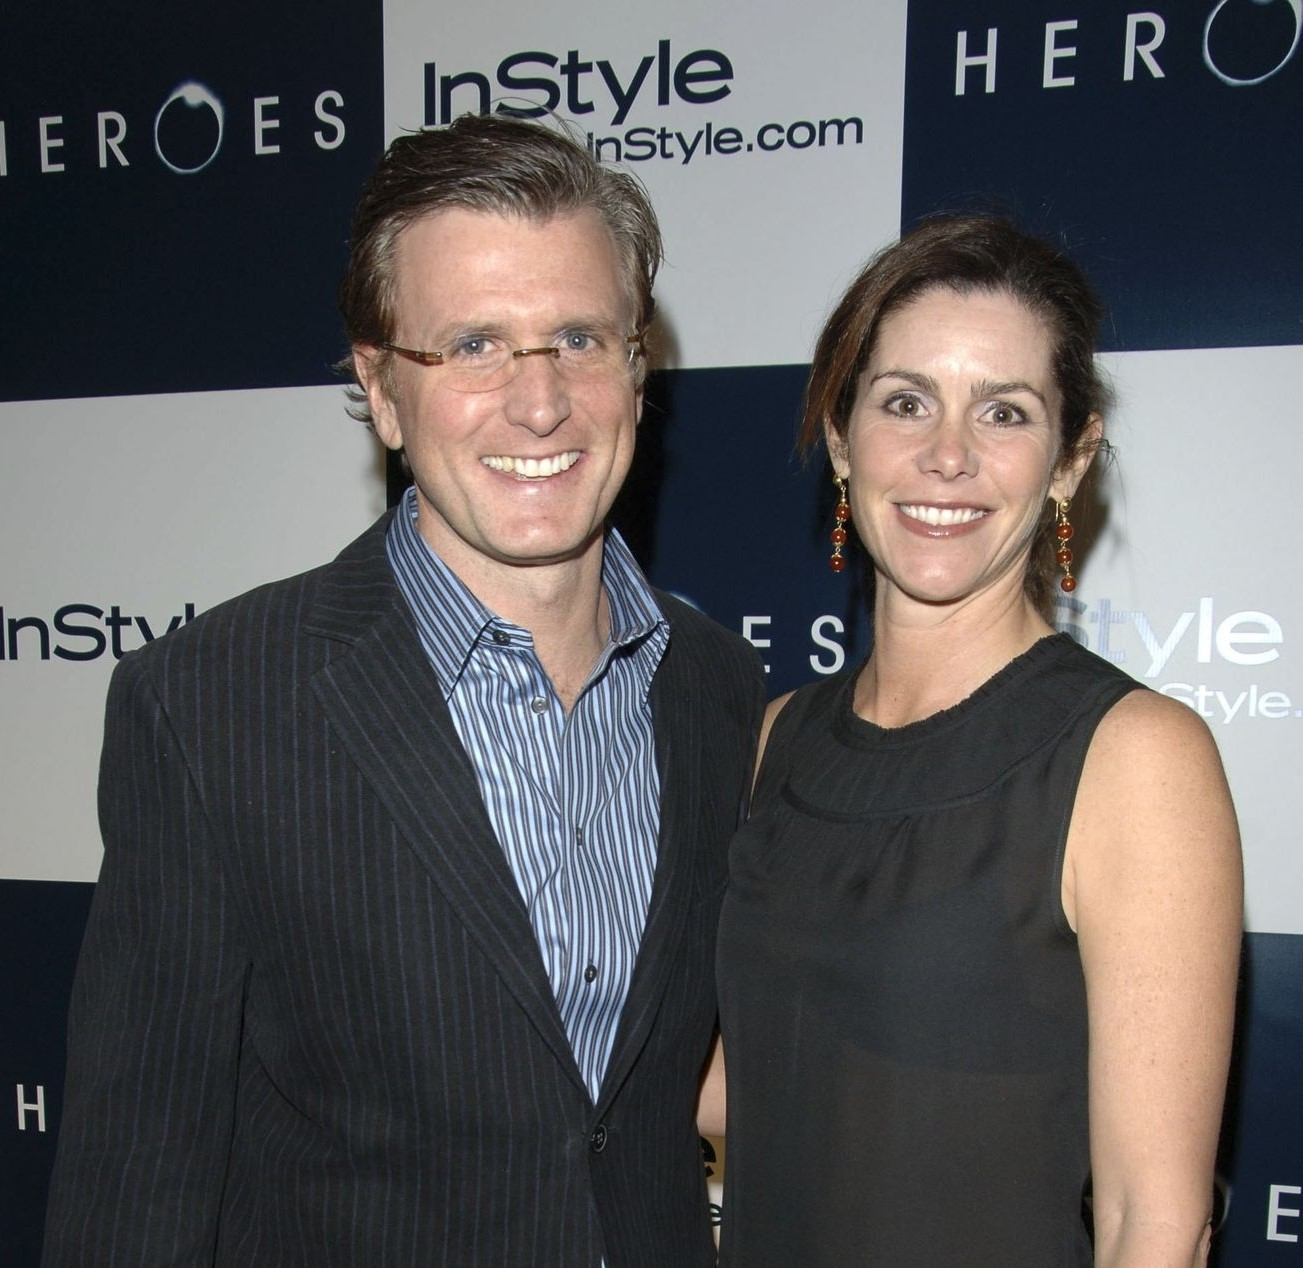 Kevin Reilly with his beautiful wife, Cristan Reilly, attending an event.